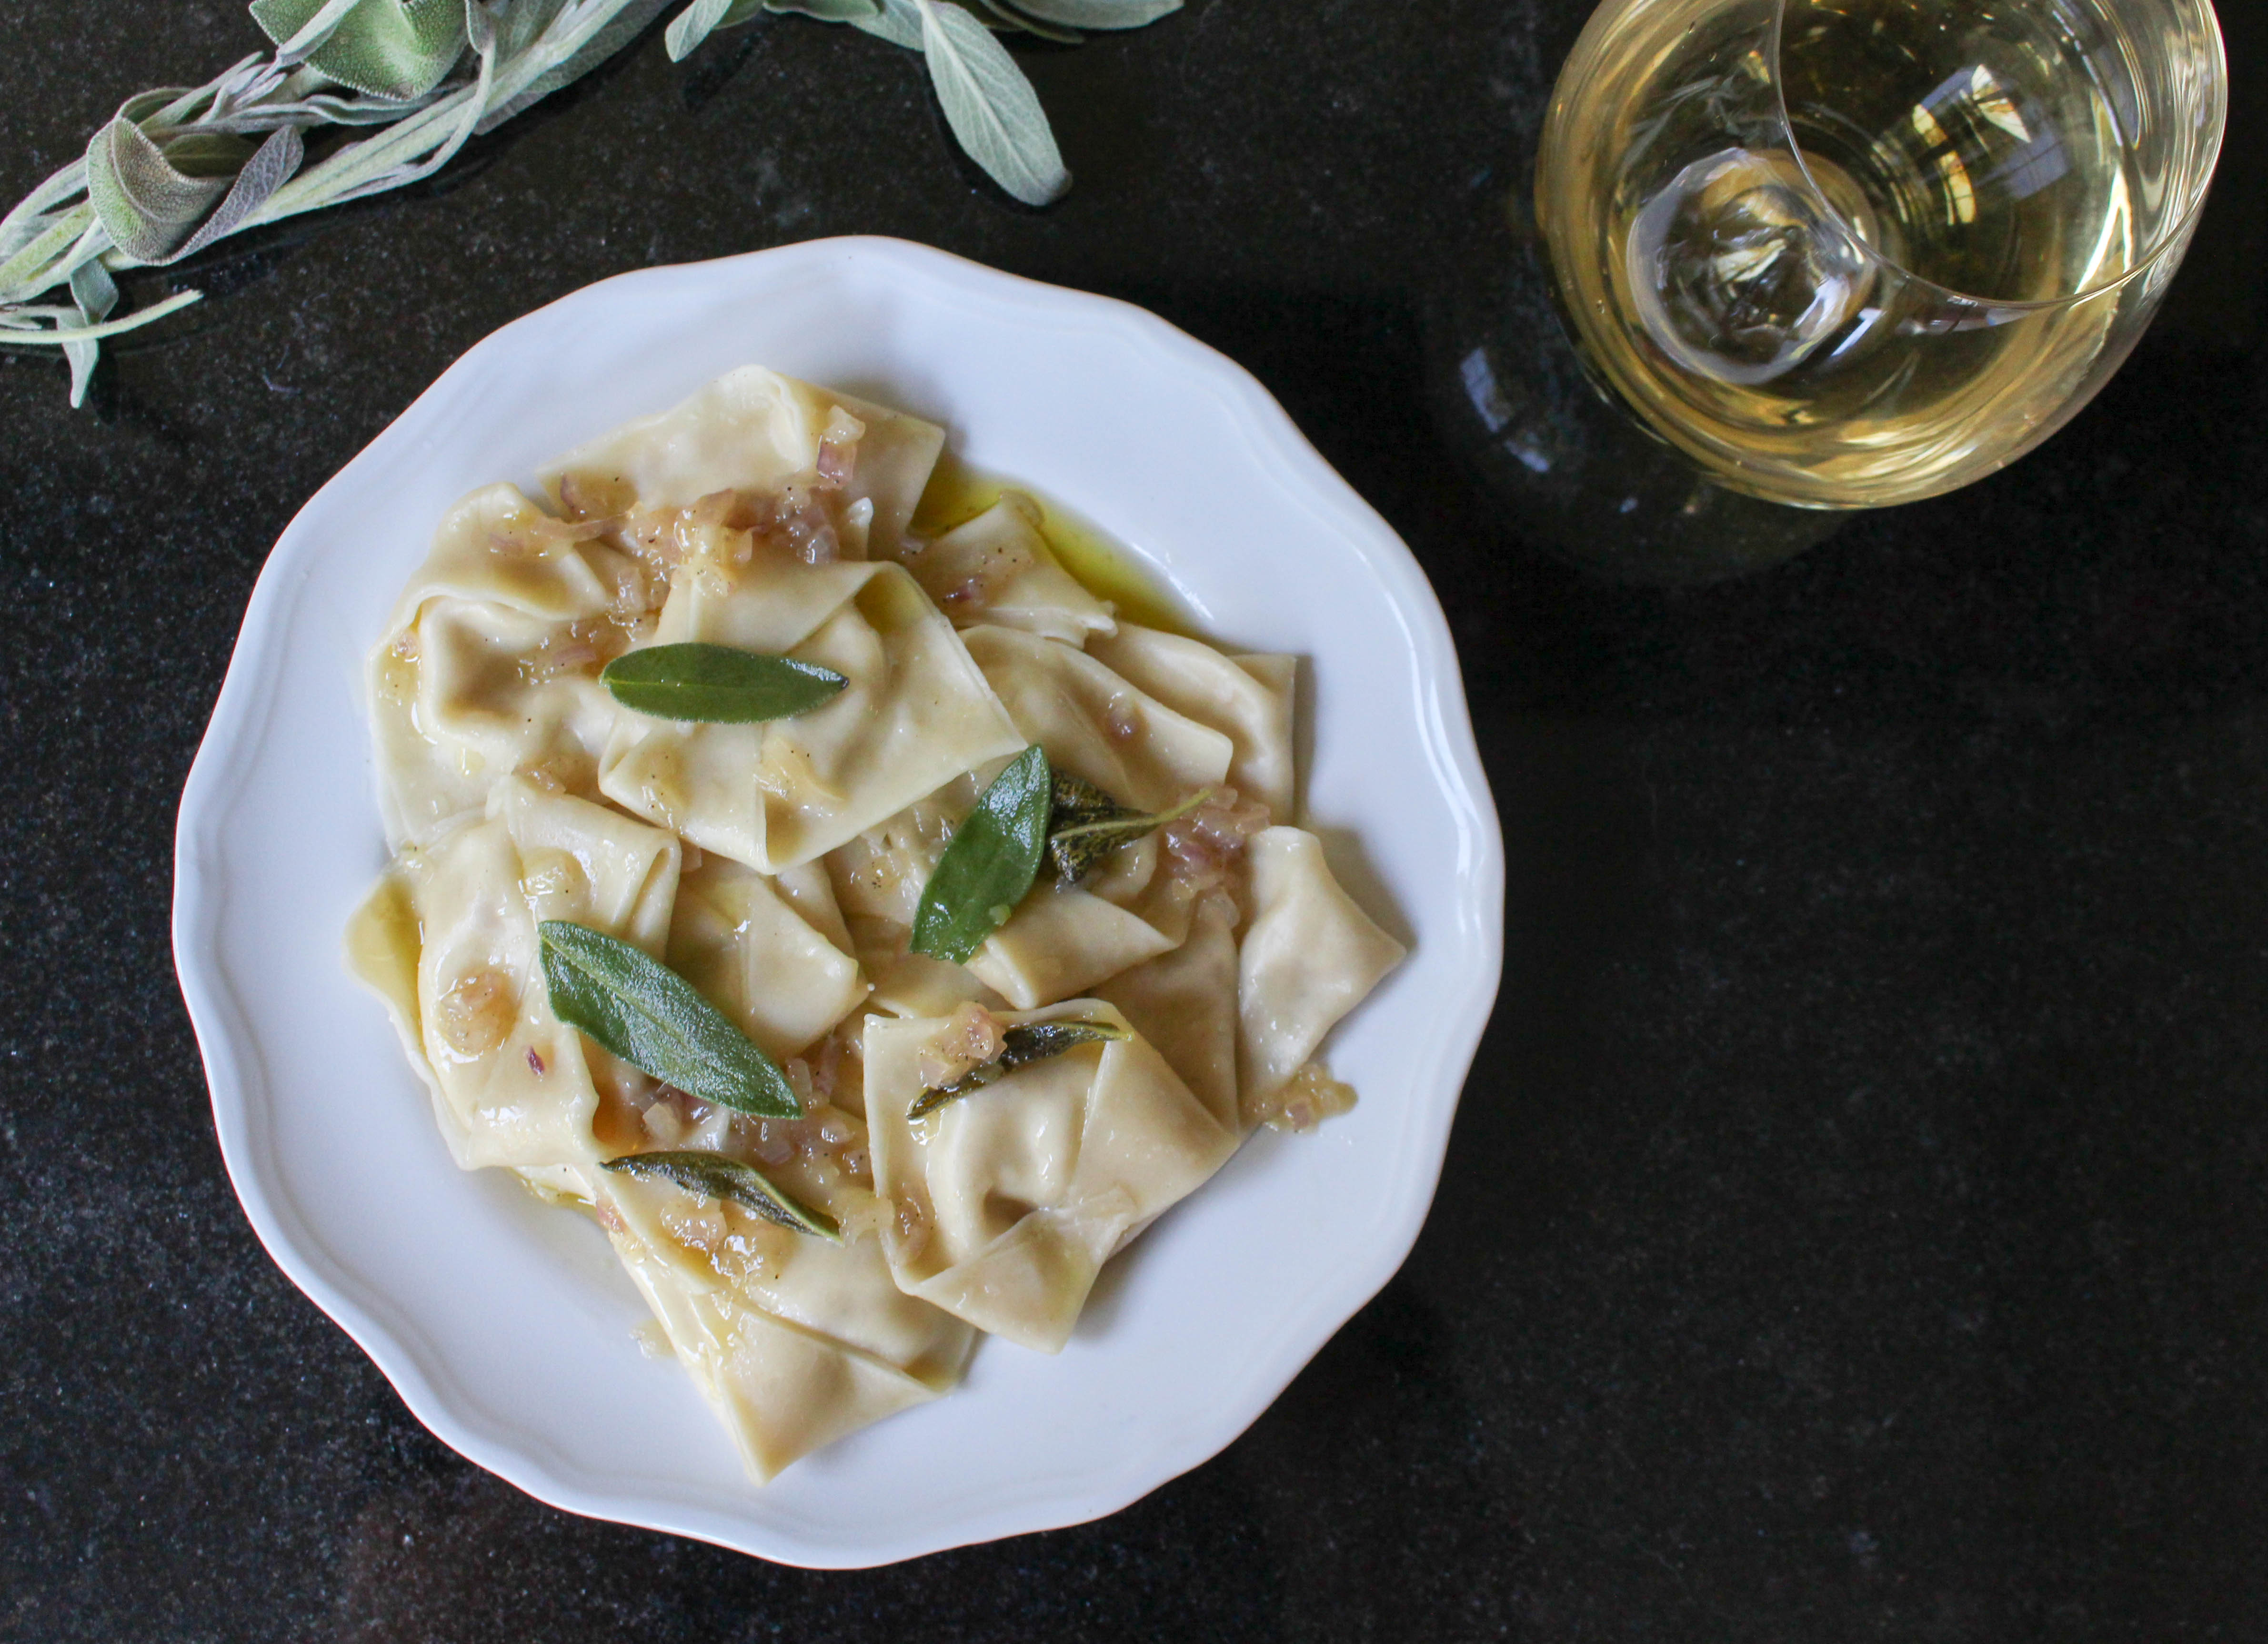 Pear & Cheese Ravioli with Brown Butter Sage Sauce